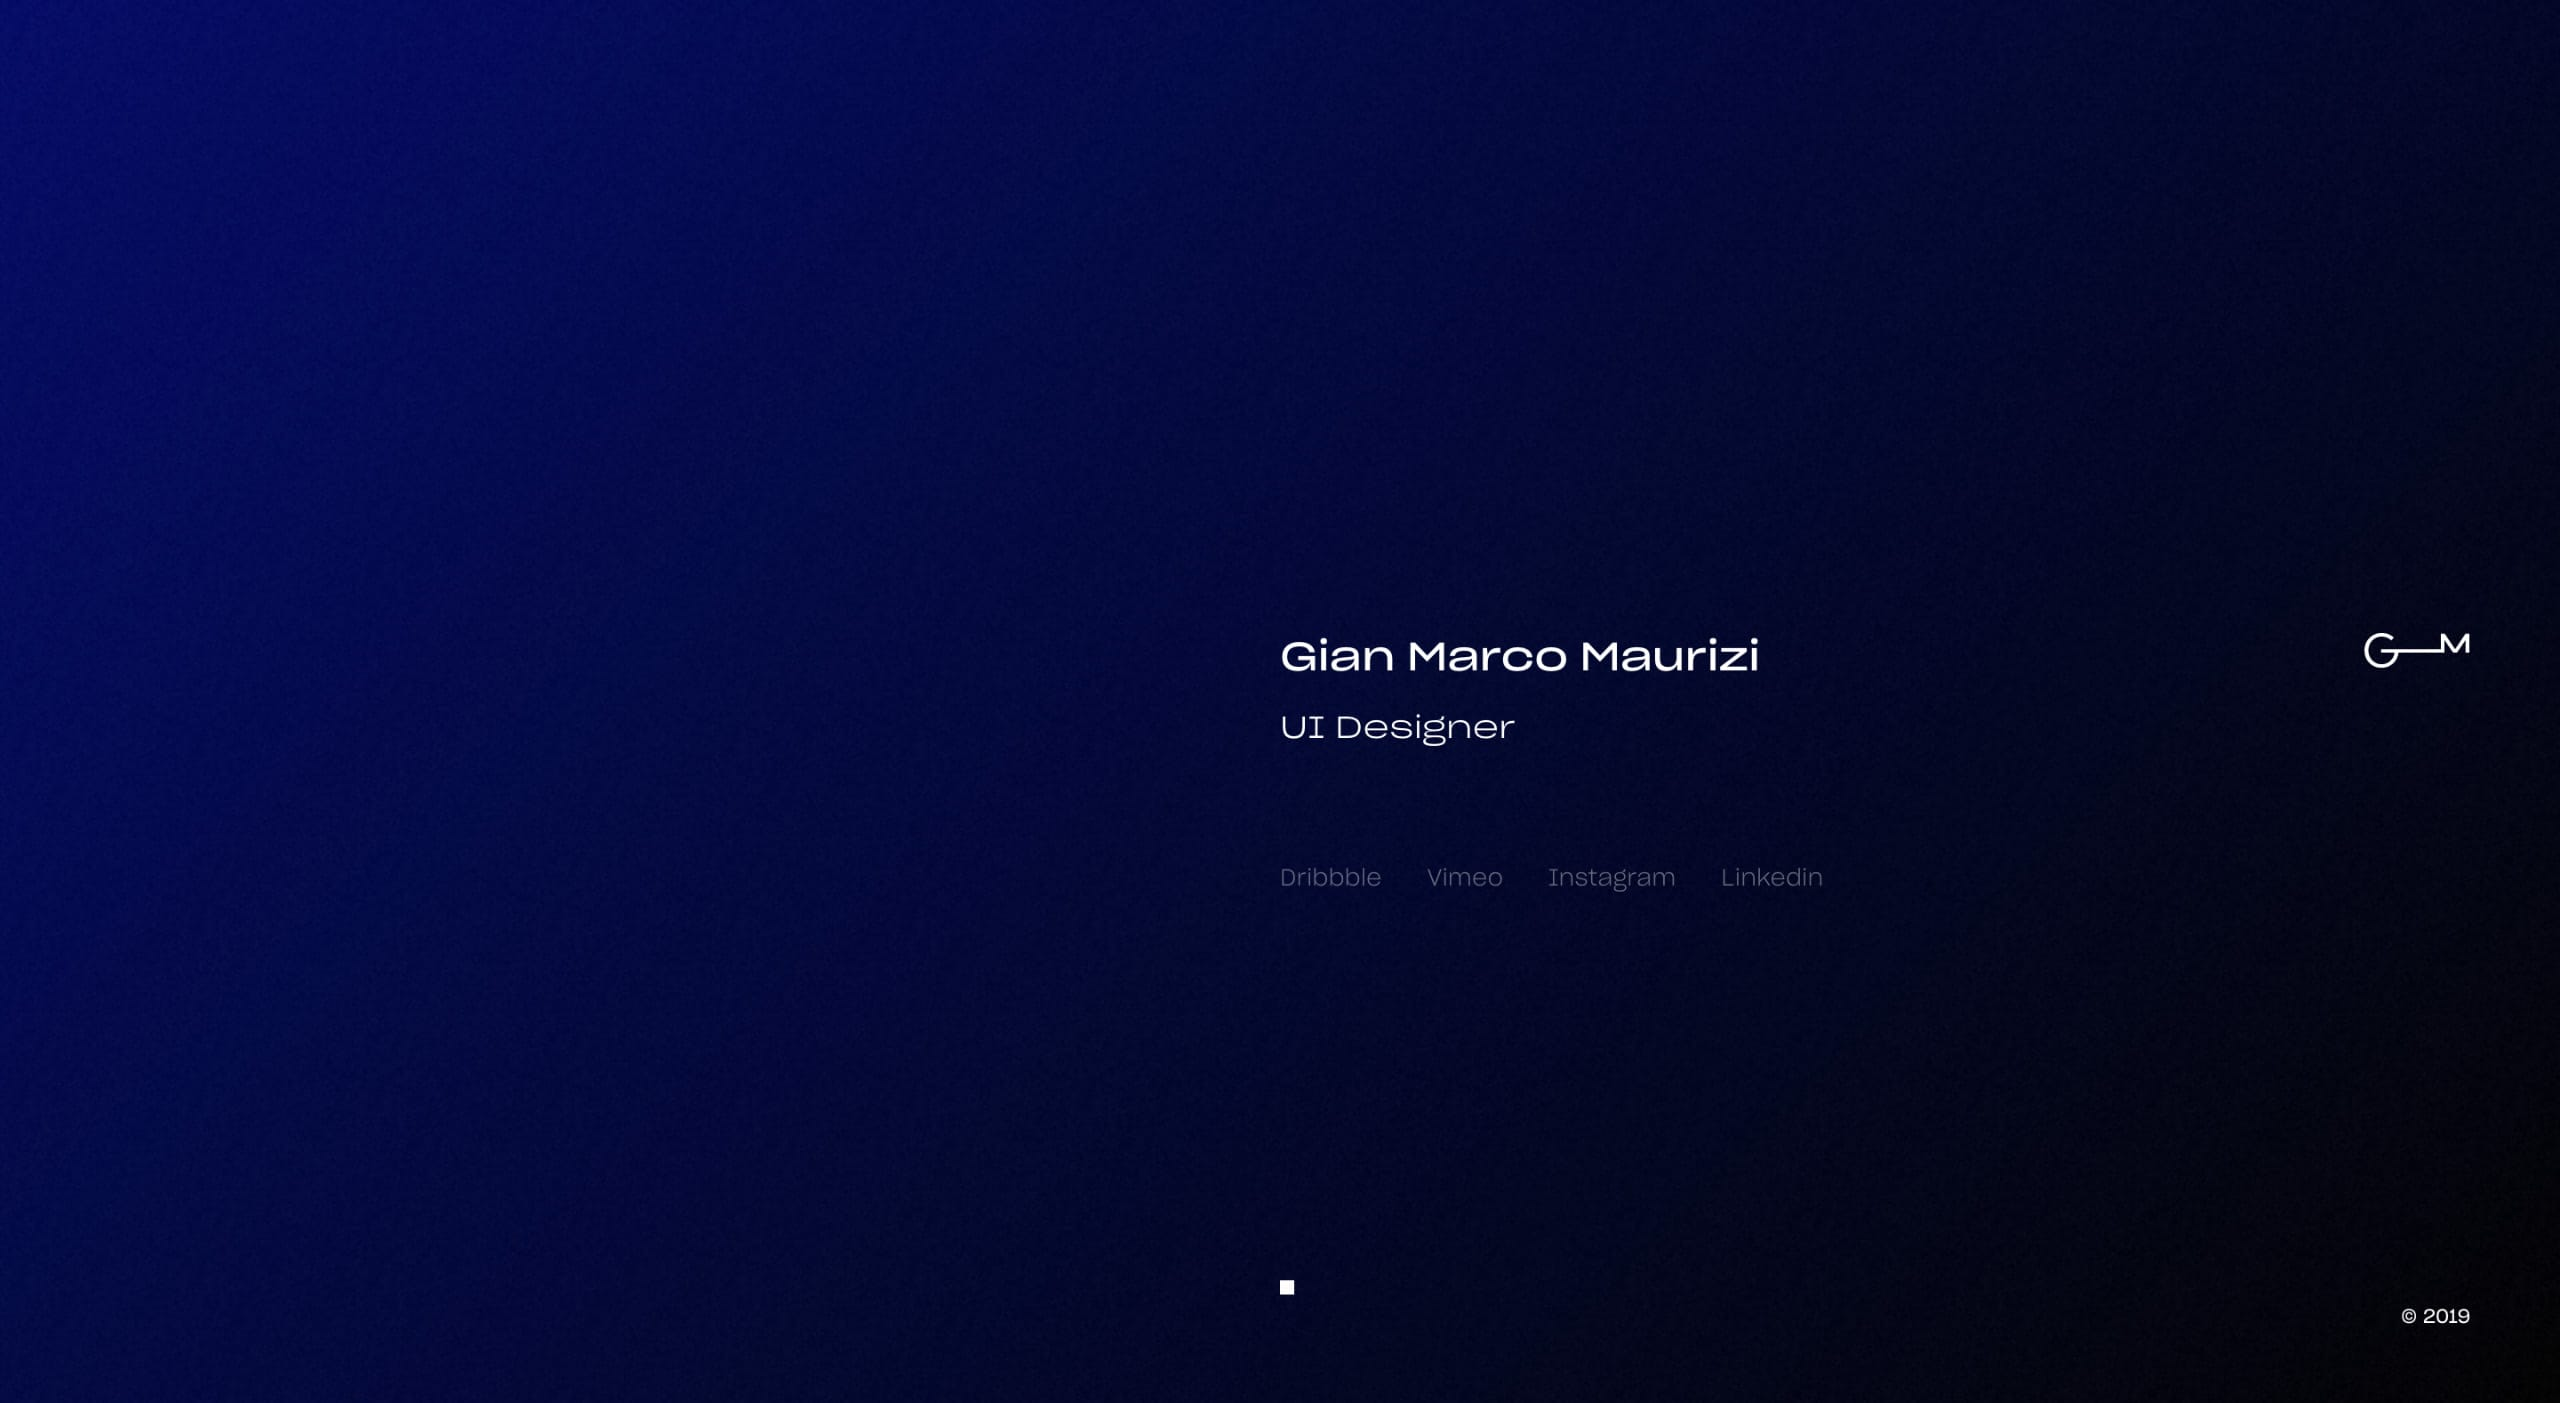 Gian Marco Maurizi Website Screenshot